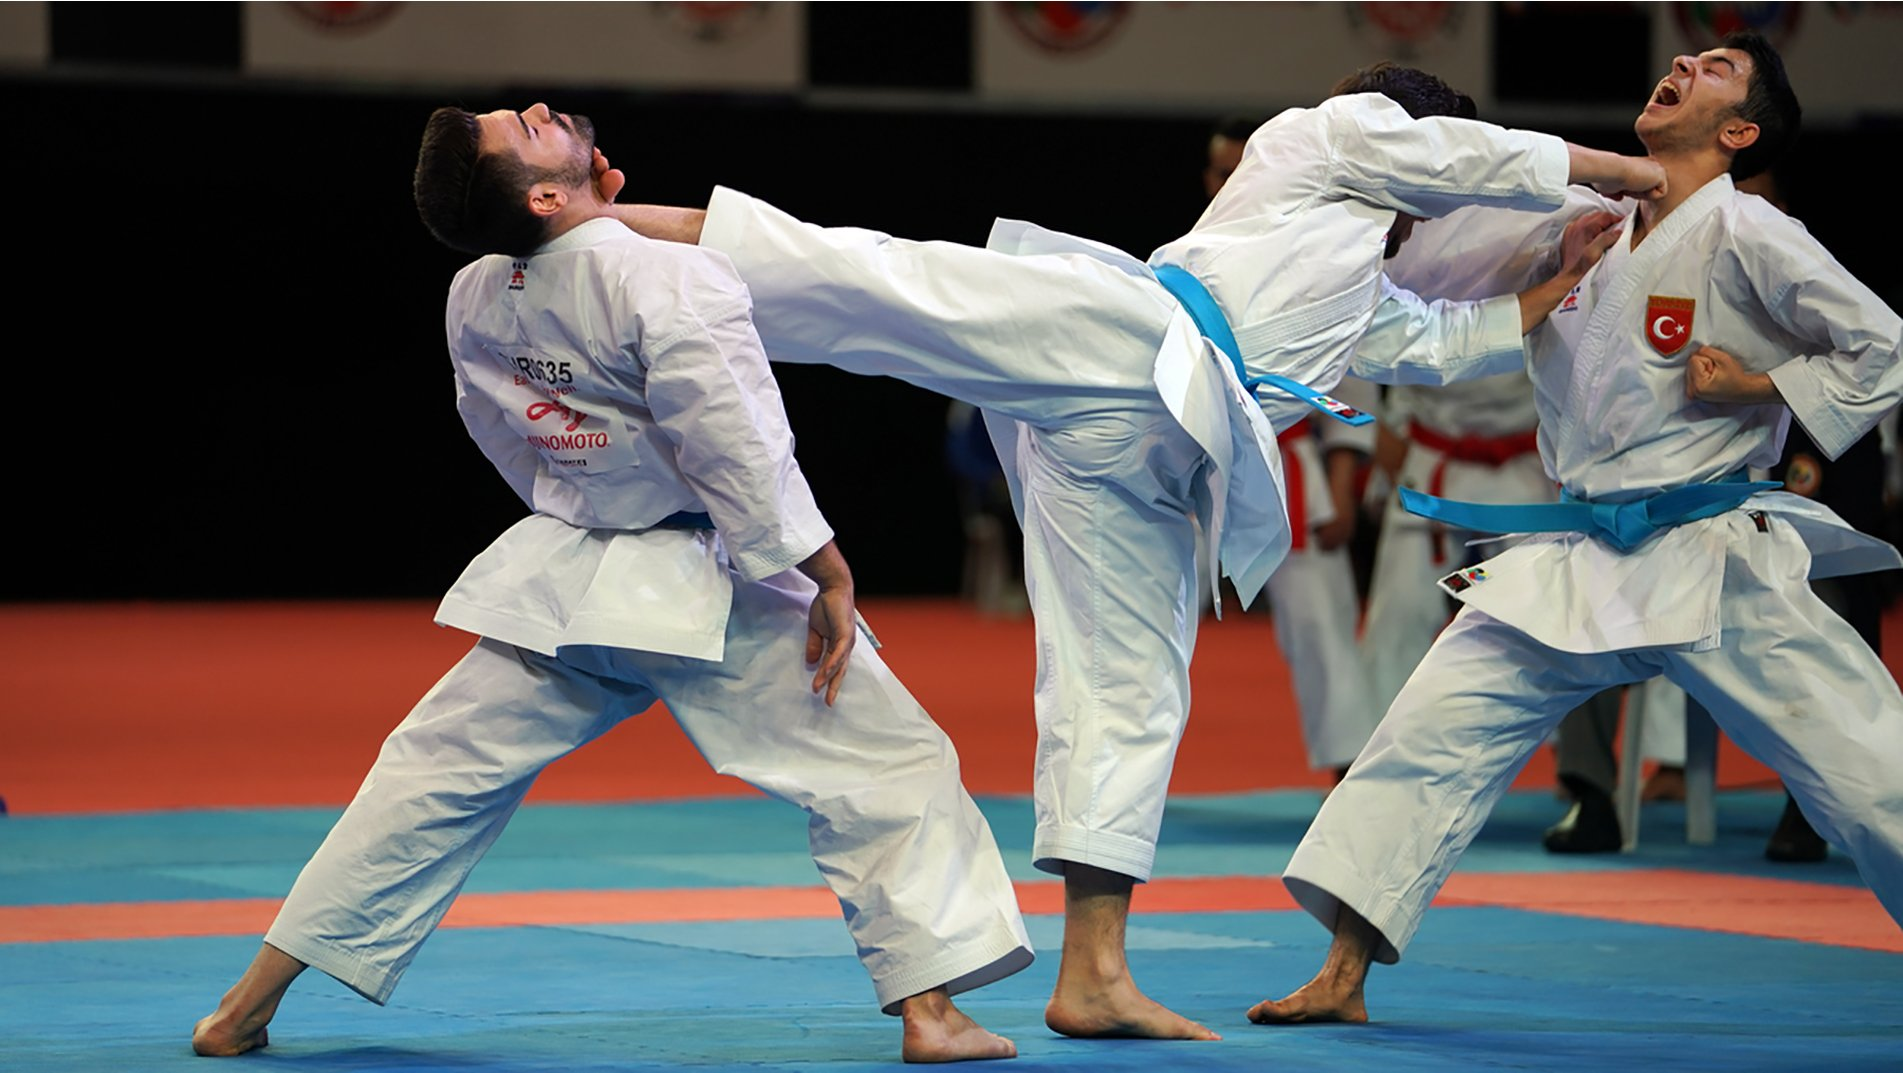 Karate returns to action at Karate 1 Premier League Istanbul